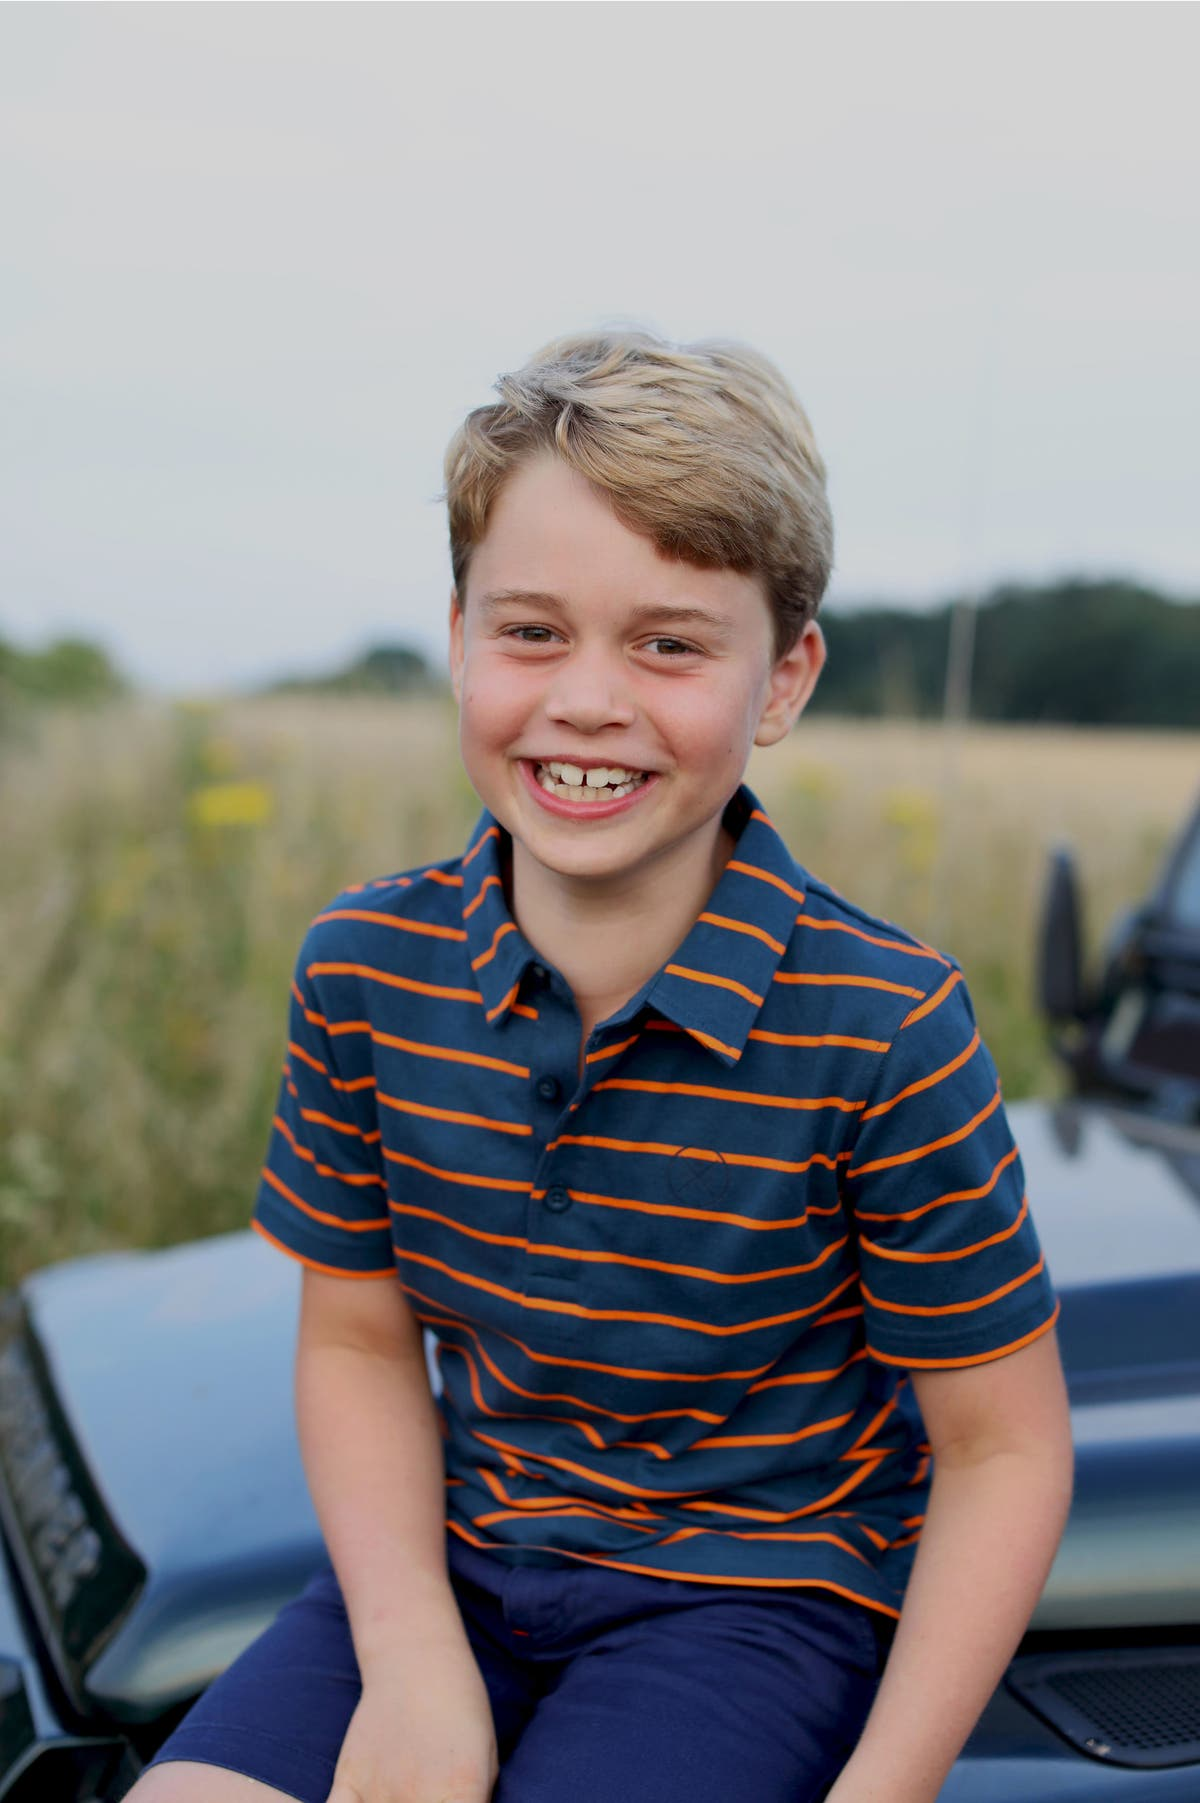 Prince George marks eighth birthday with new photo in front of Land Rover